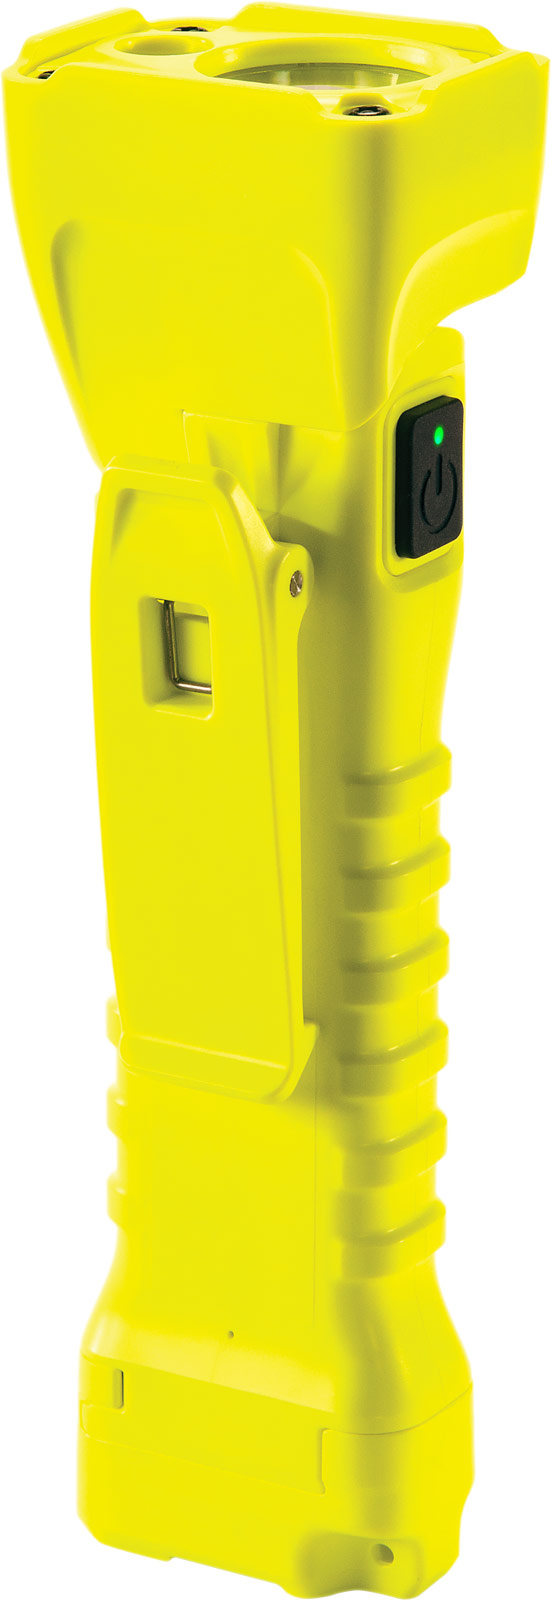 pelican intrinsically safe flashlight 3415